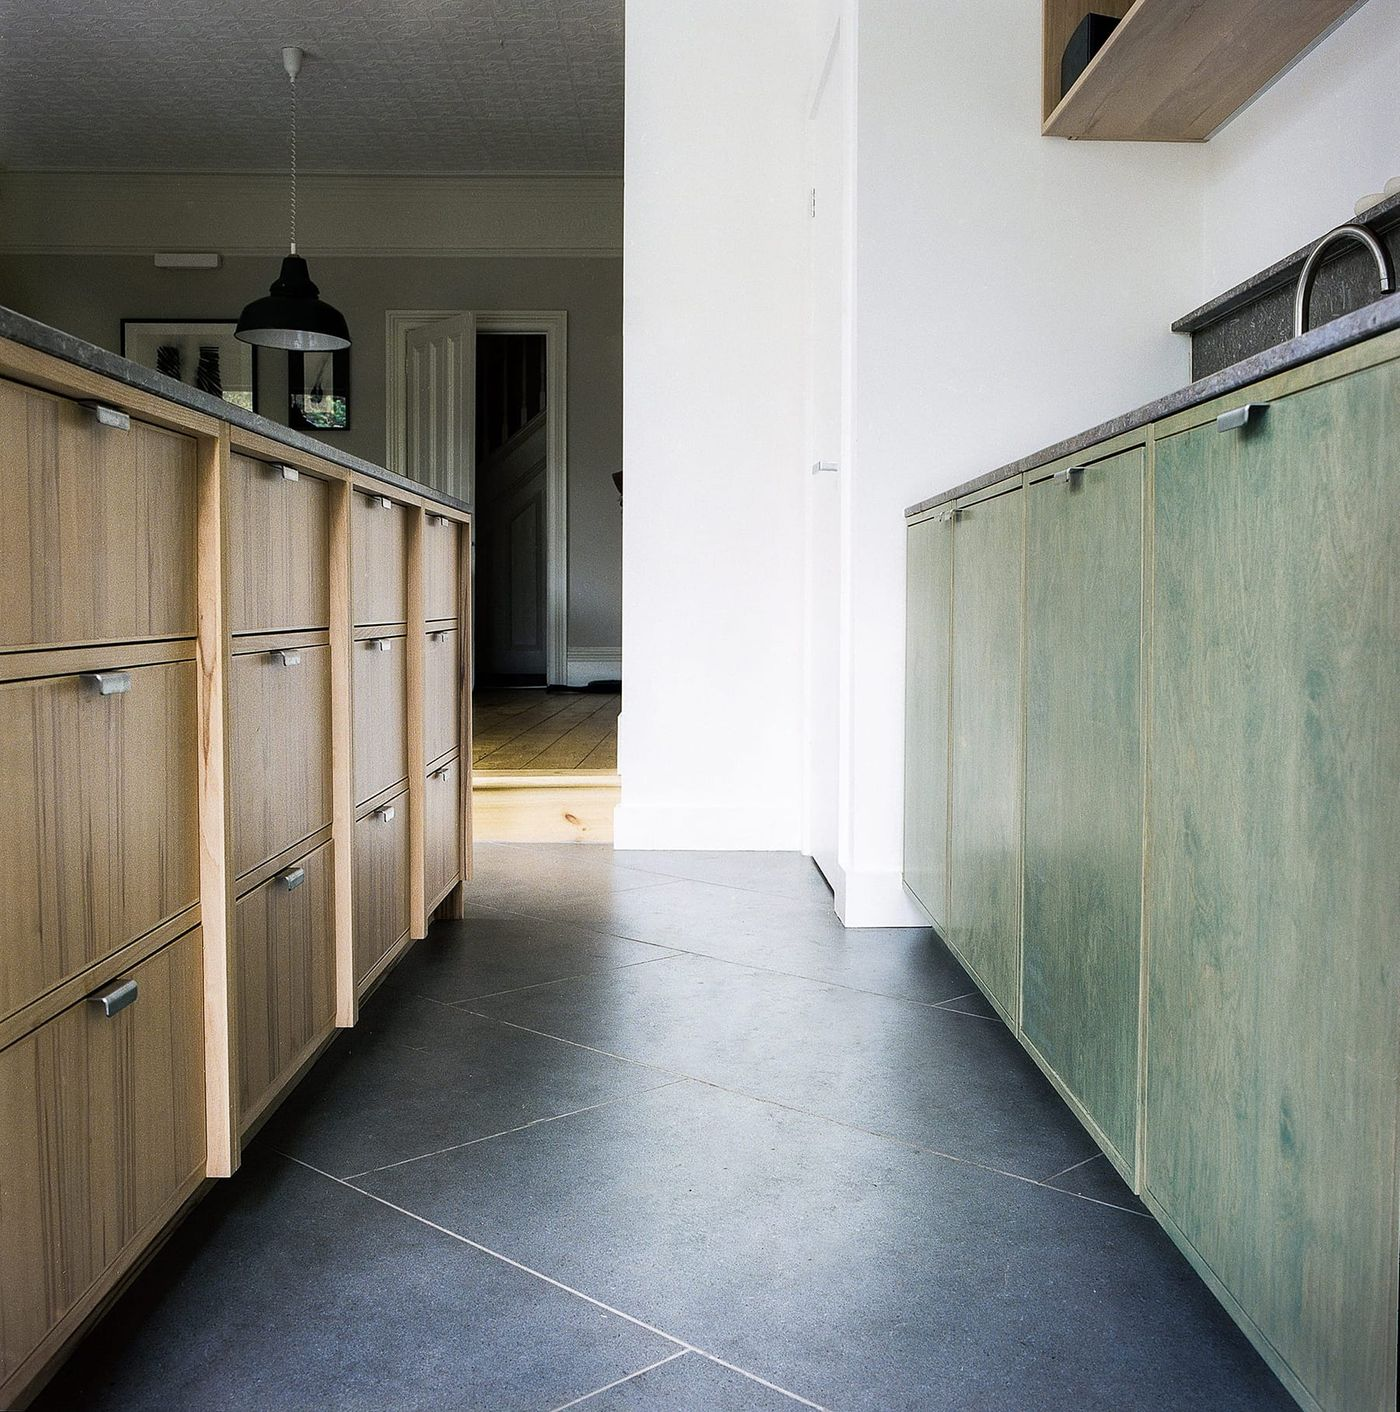 Moss green stained birch plywood, steamed beech and fossil mandale limestone bespoke kitchen at Southgrove Road designed by From Works.